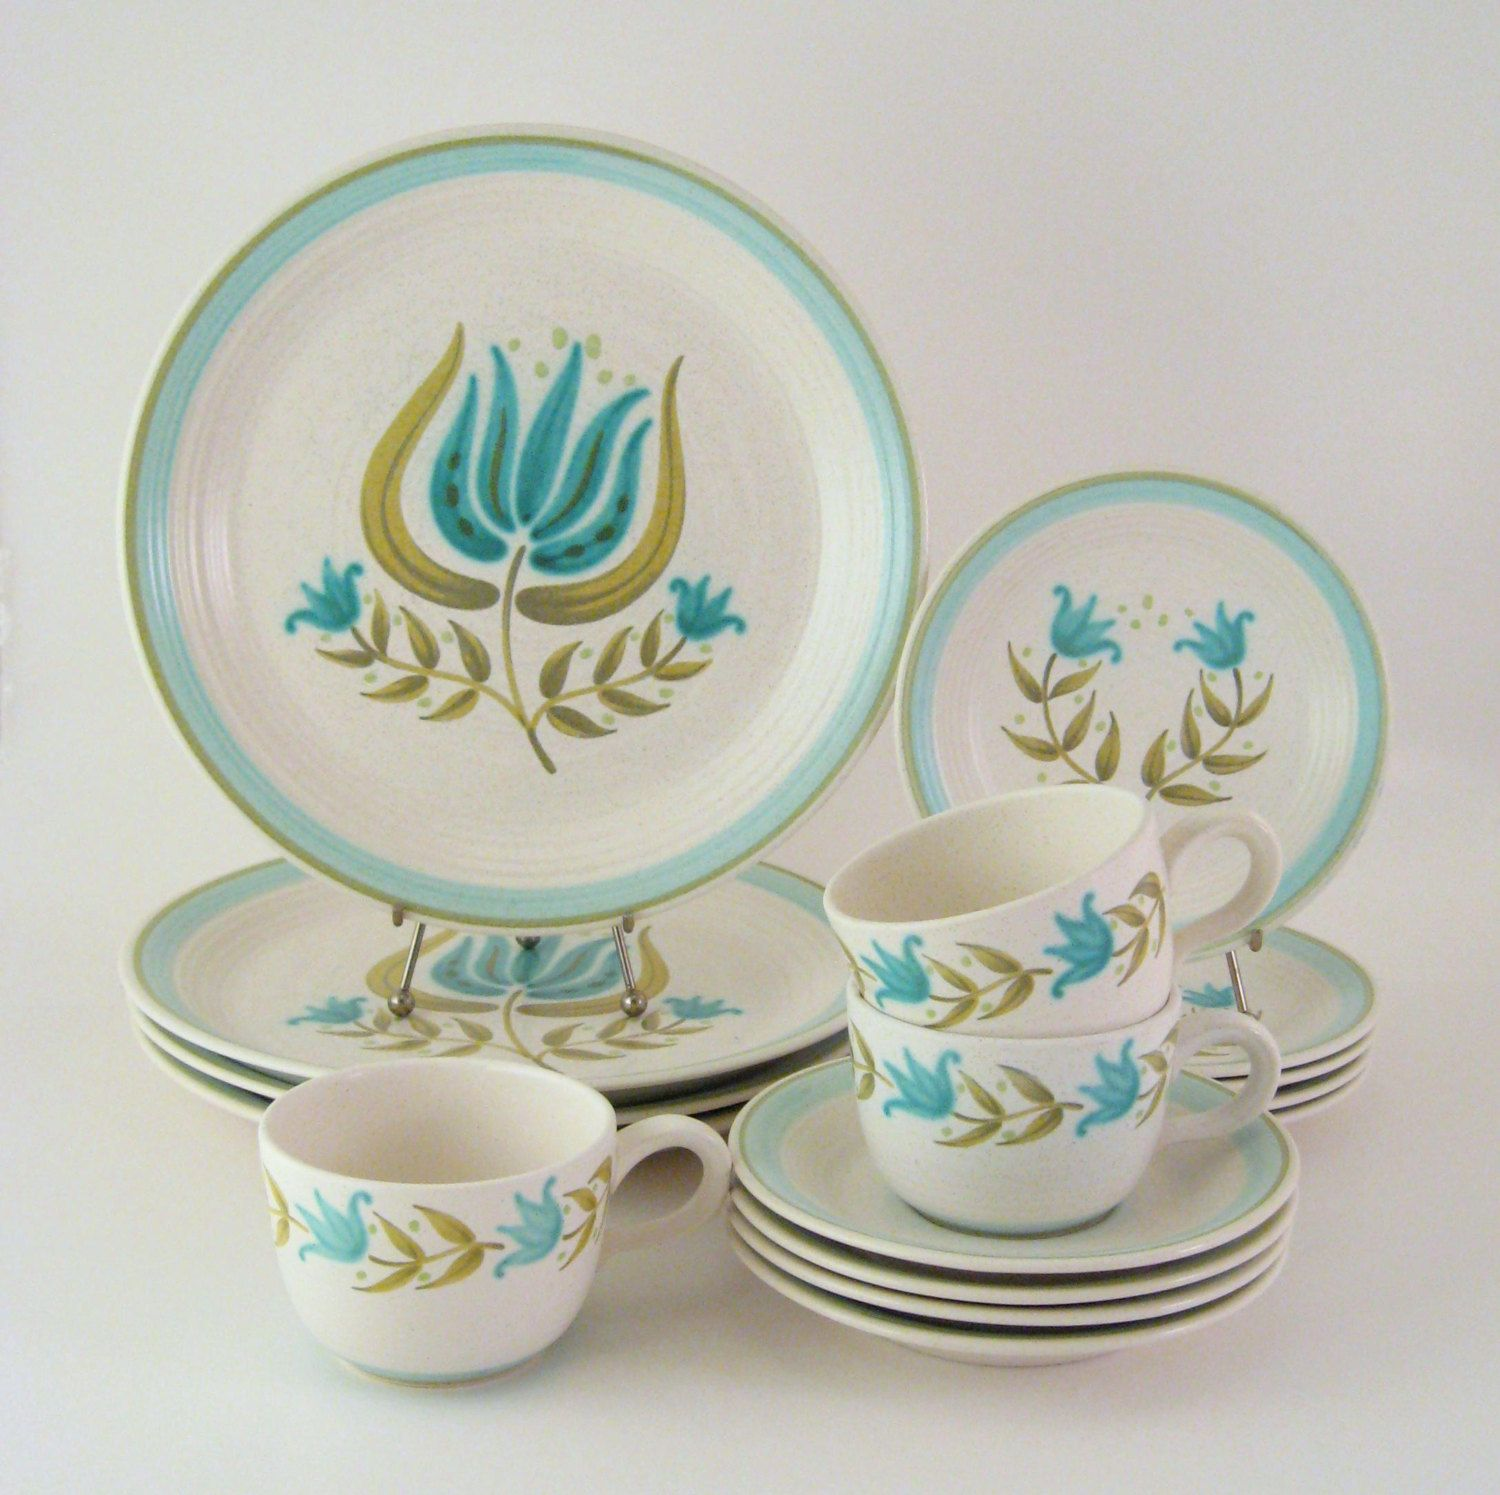 1950s Dishes: Vintage Franciscan Tulip Time Dinnerware Set, Earthenware